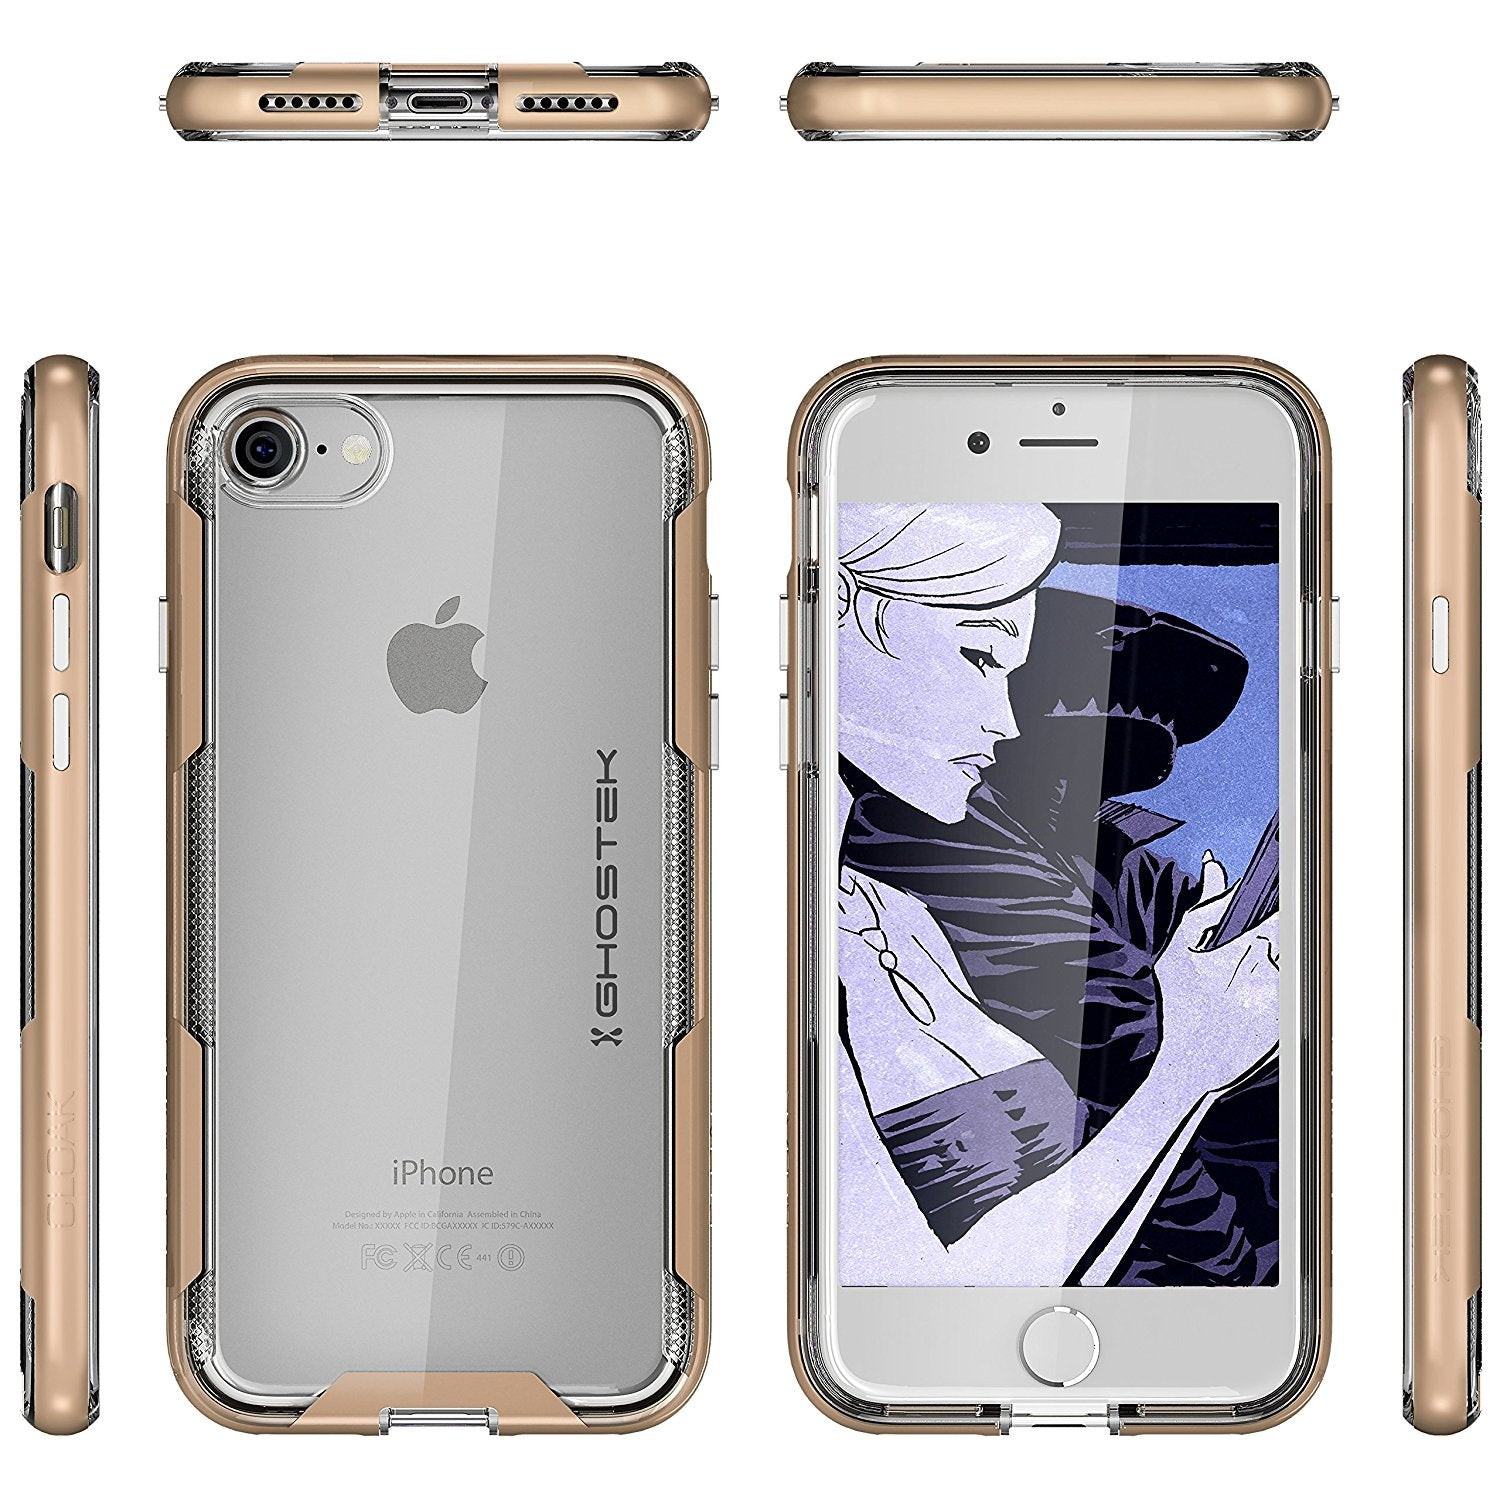 iPhone 7 Case, Ghostek Cloak 3 Series Case for iPhone 7 Case Clear Protective Case [GOLD]